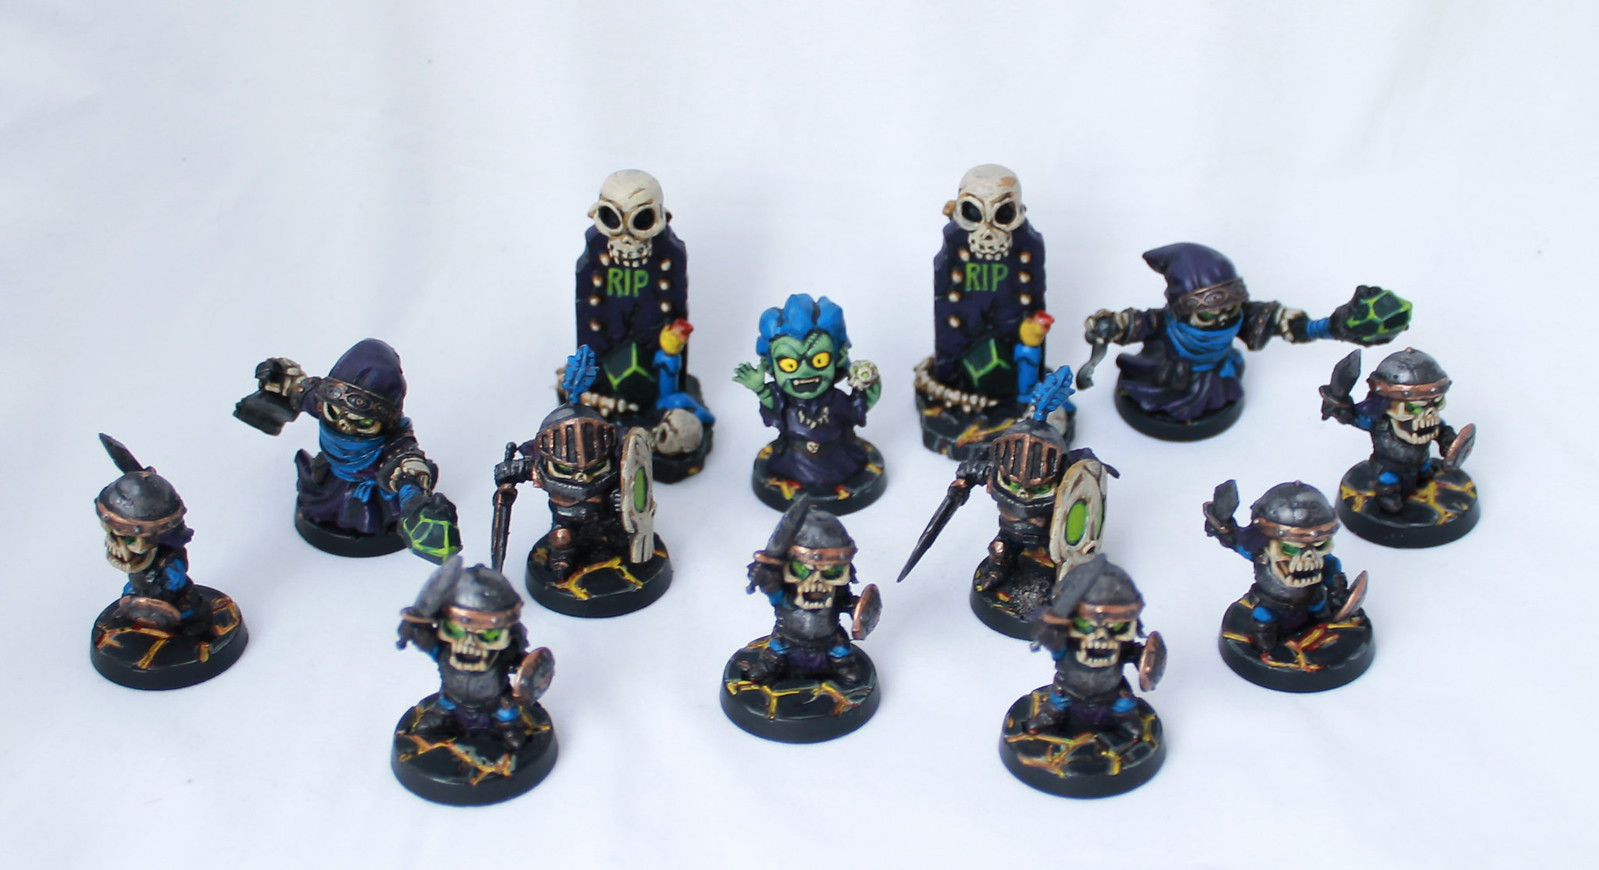 Super Dungeon Explore Painted Chibi Undead Skeletons Wizard Mage Shallow Grave Minions